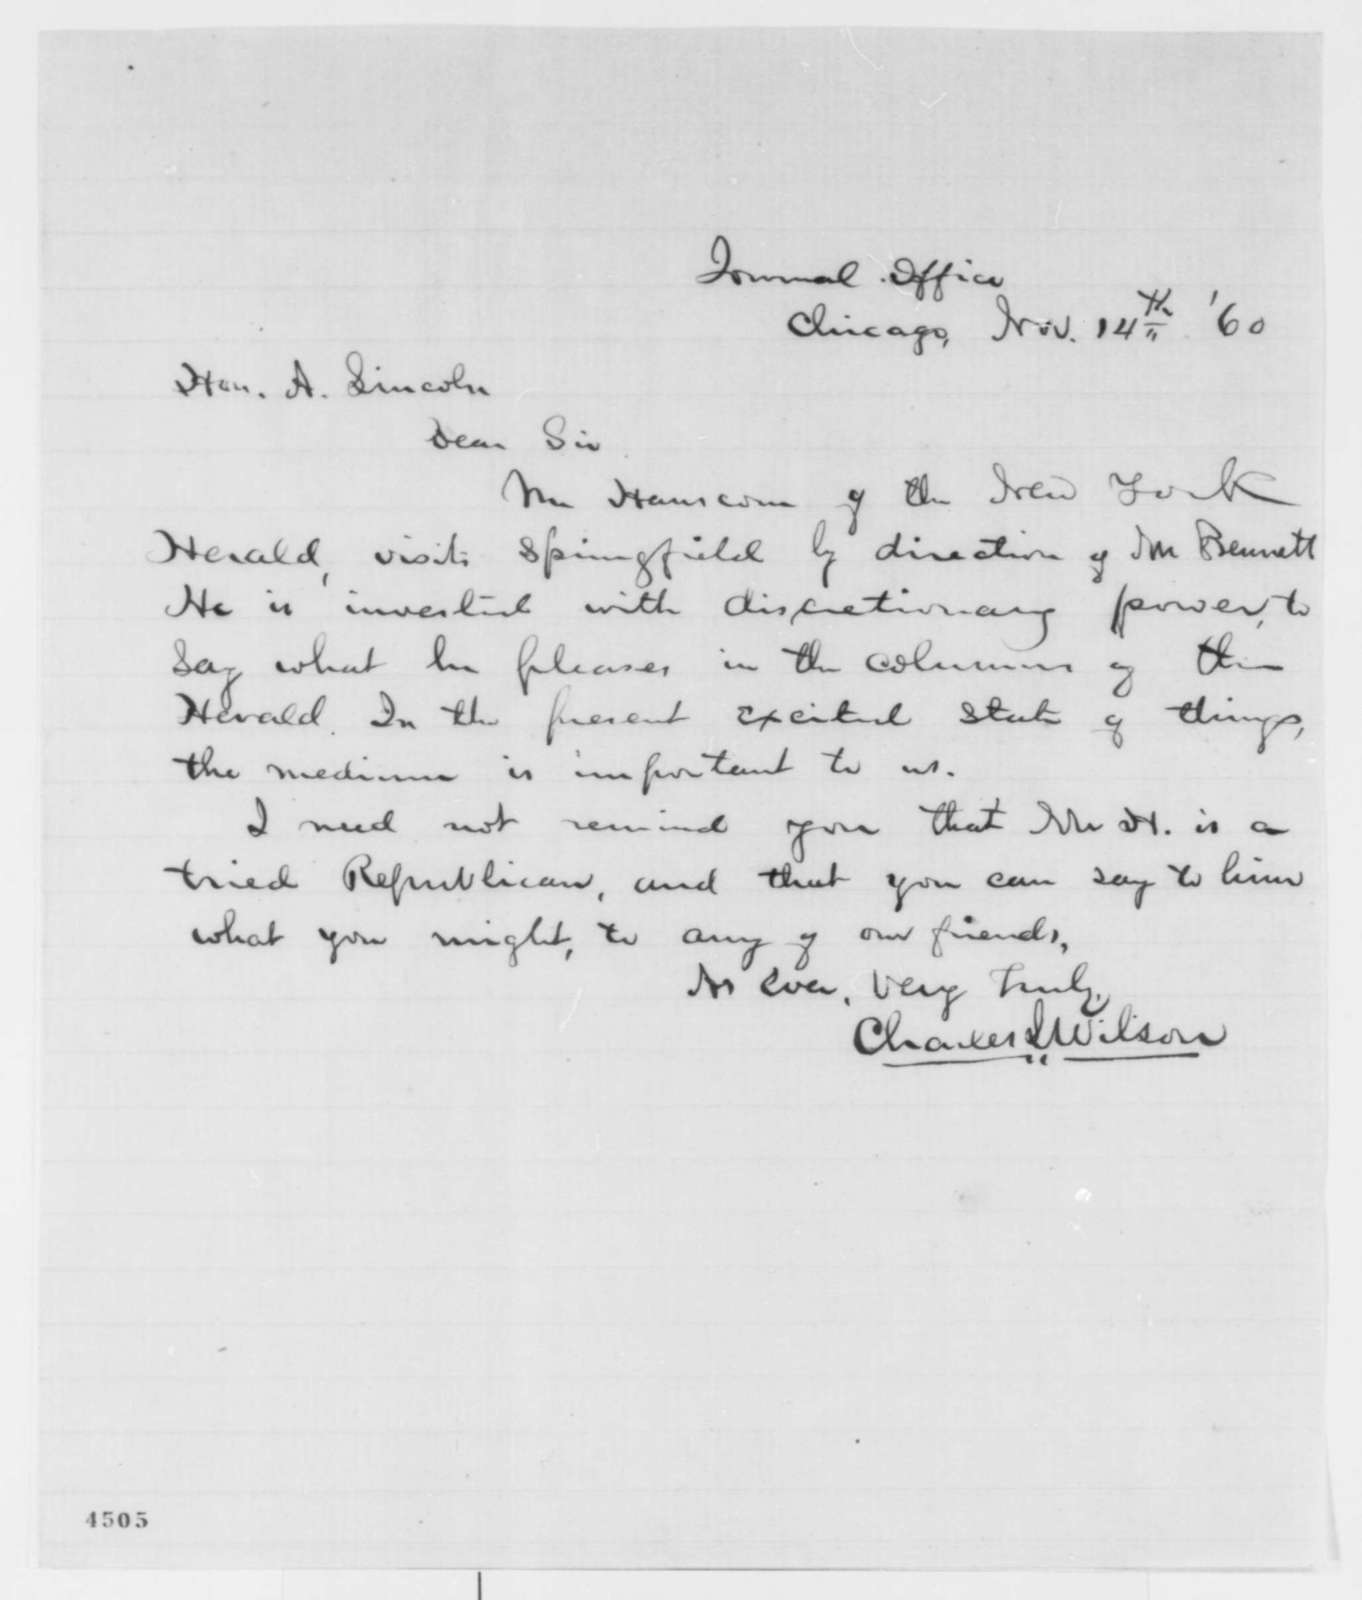 Charles L. Wilson to Abraham Lincoln, Wednesday, November 14, 1860  (Recommendation)